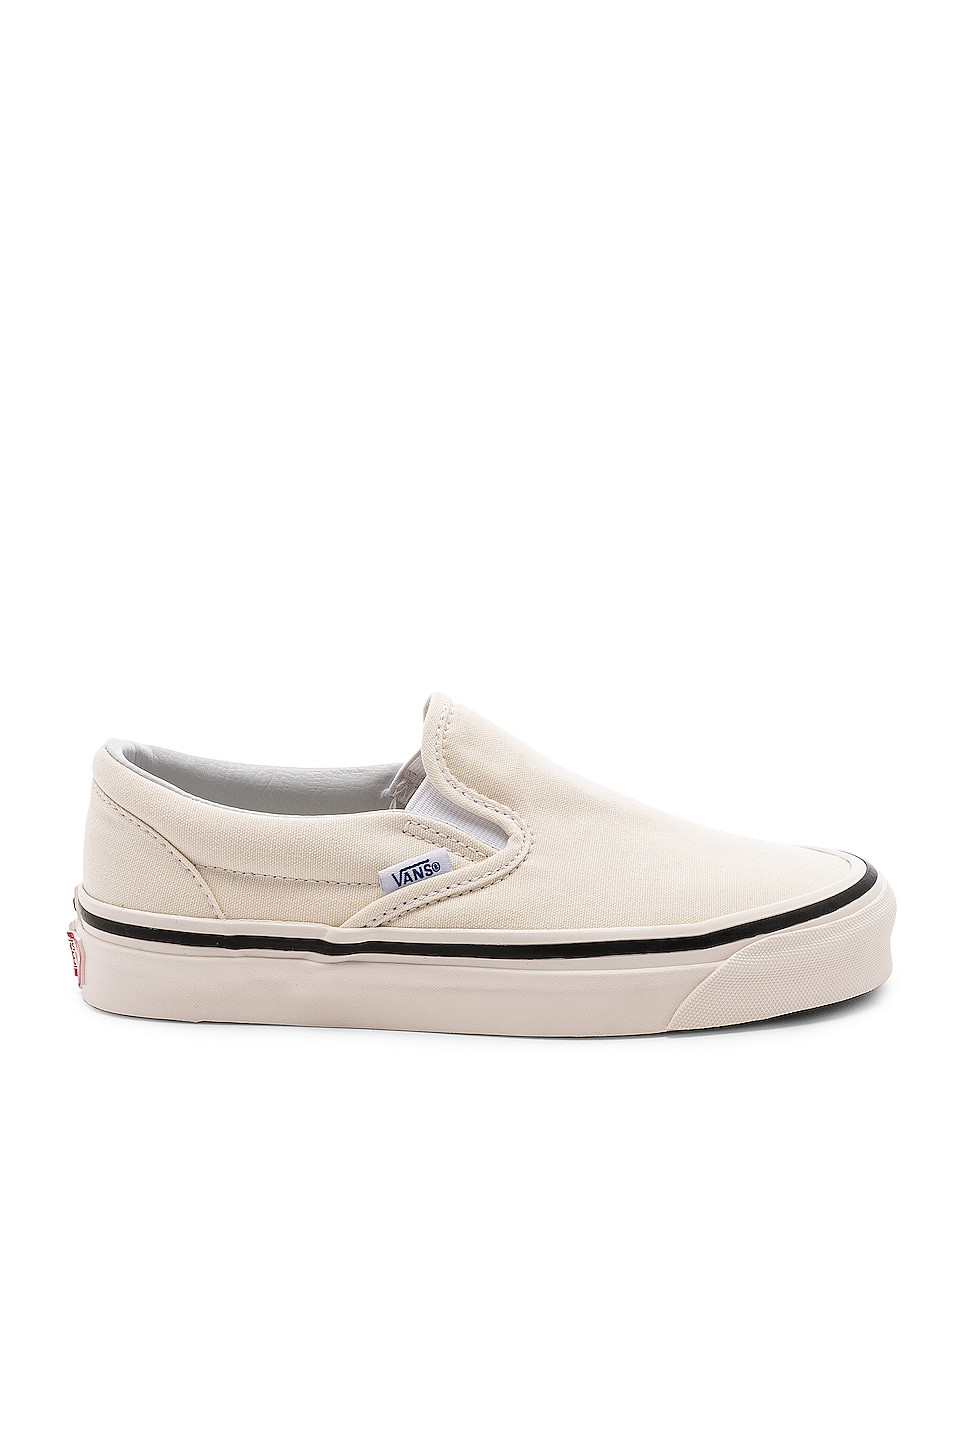 Vans Anaheim Classic Slip On 98 DX in OG White & White